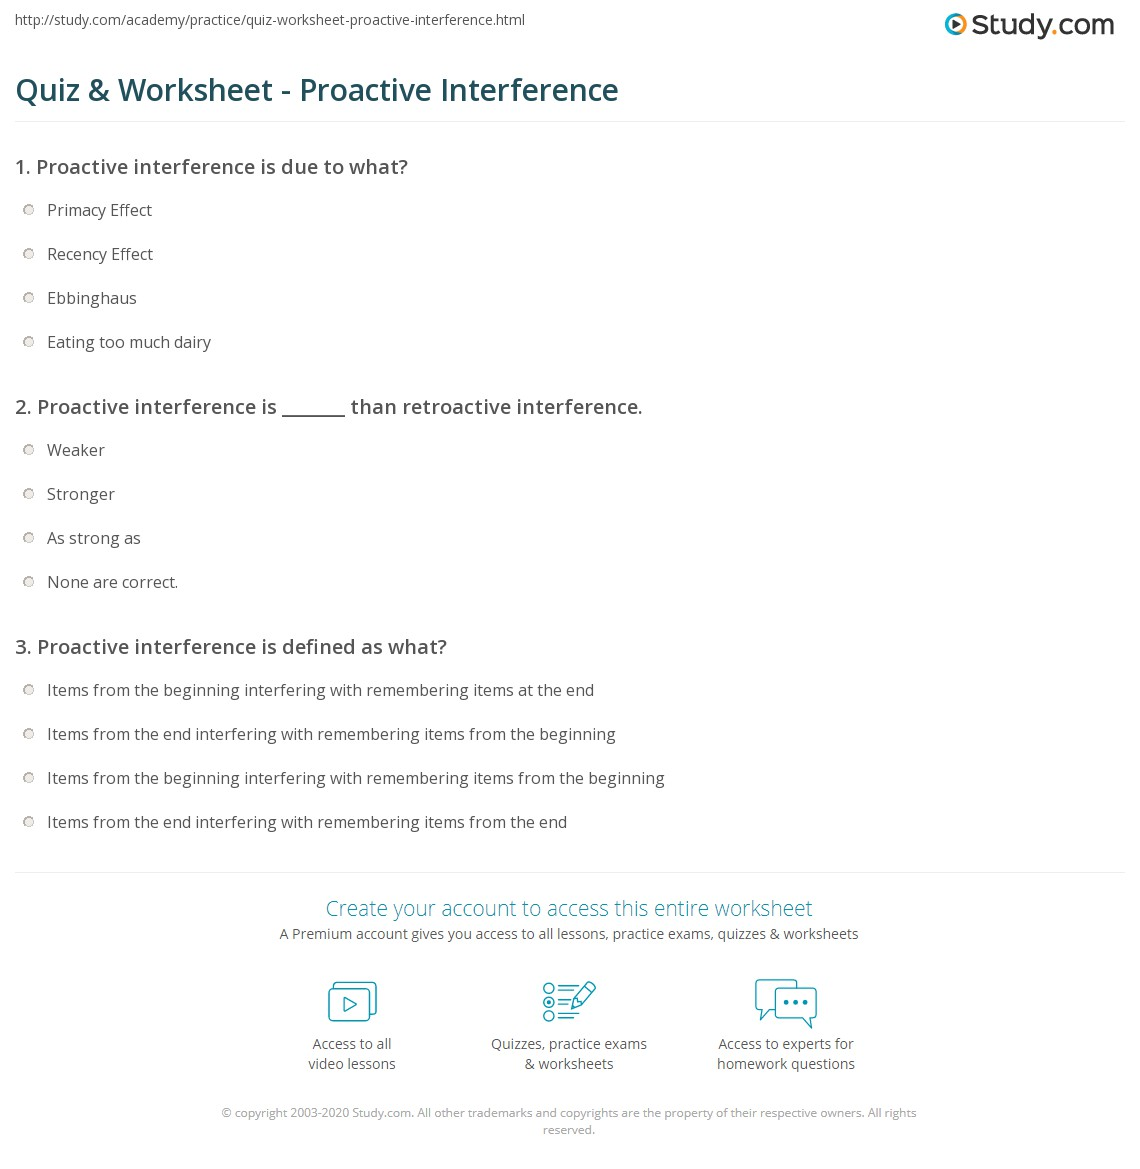 Quiz Worksheet Proactive Interference Study